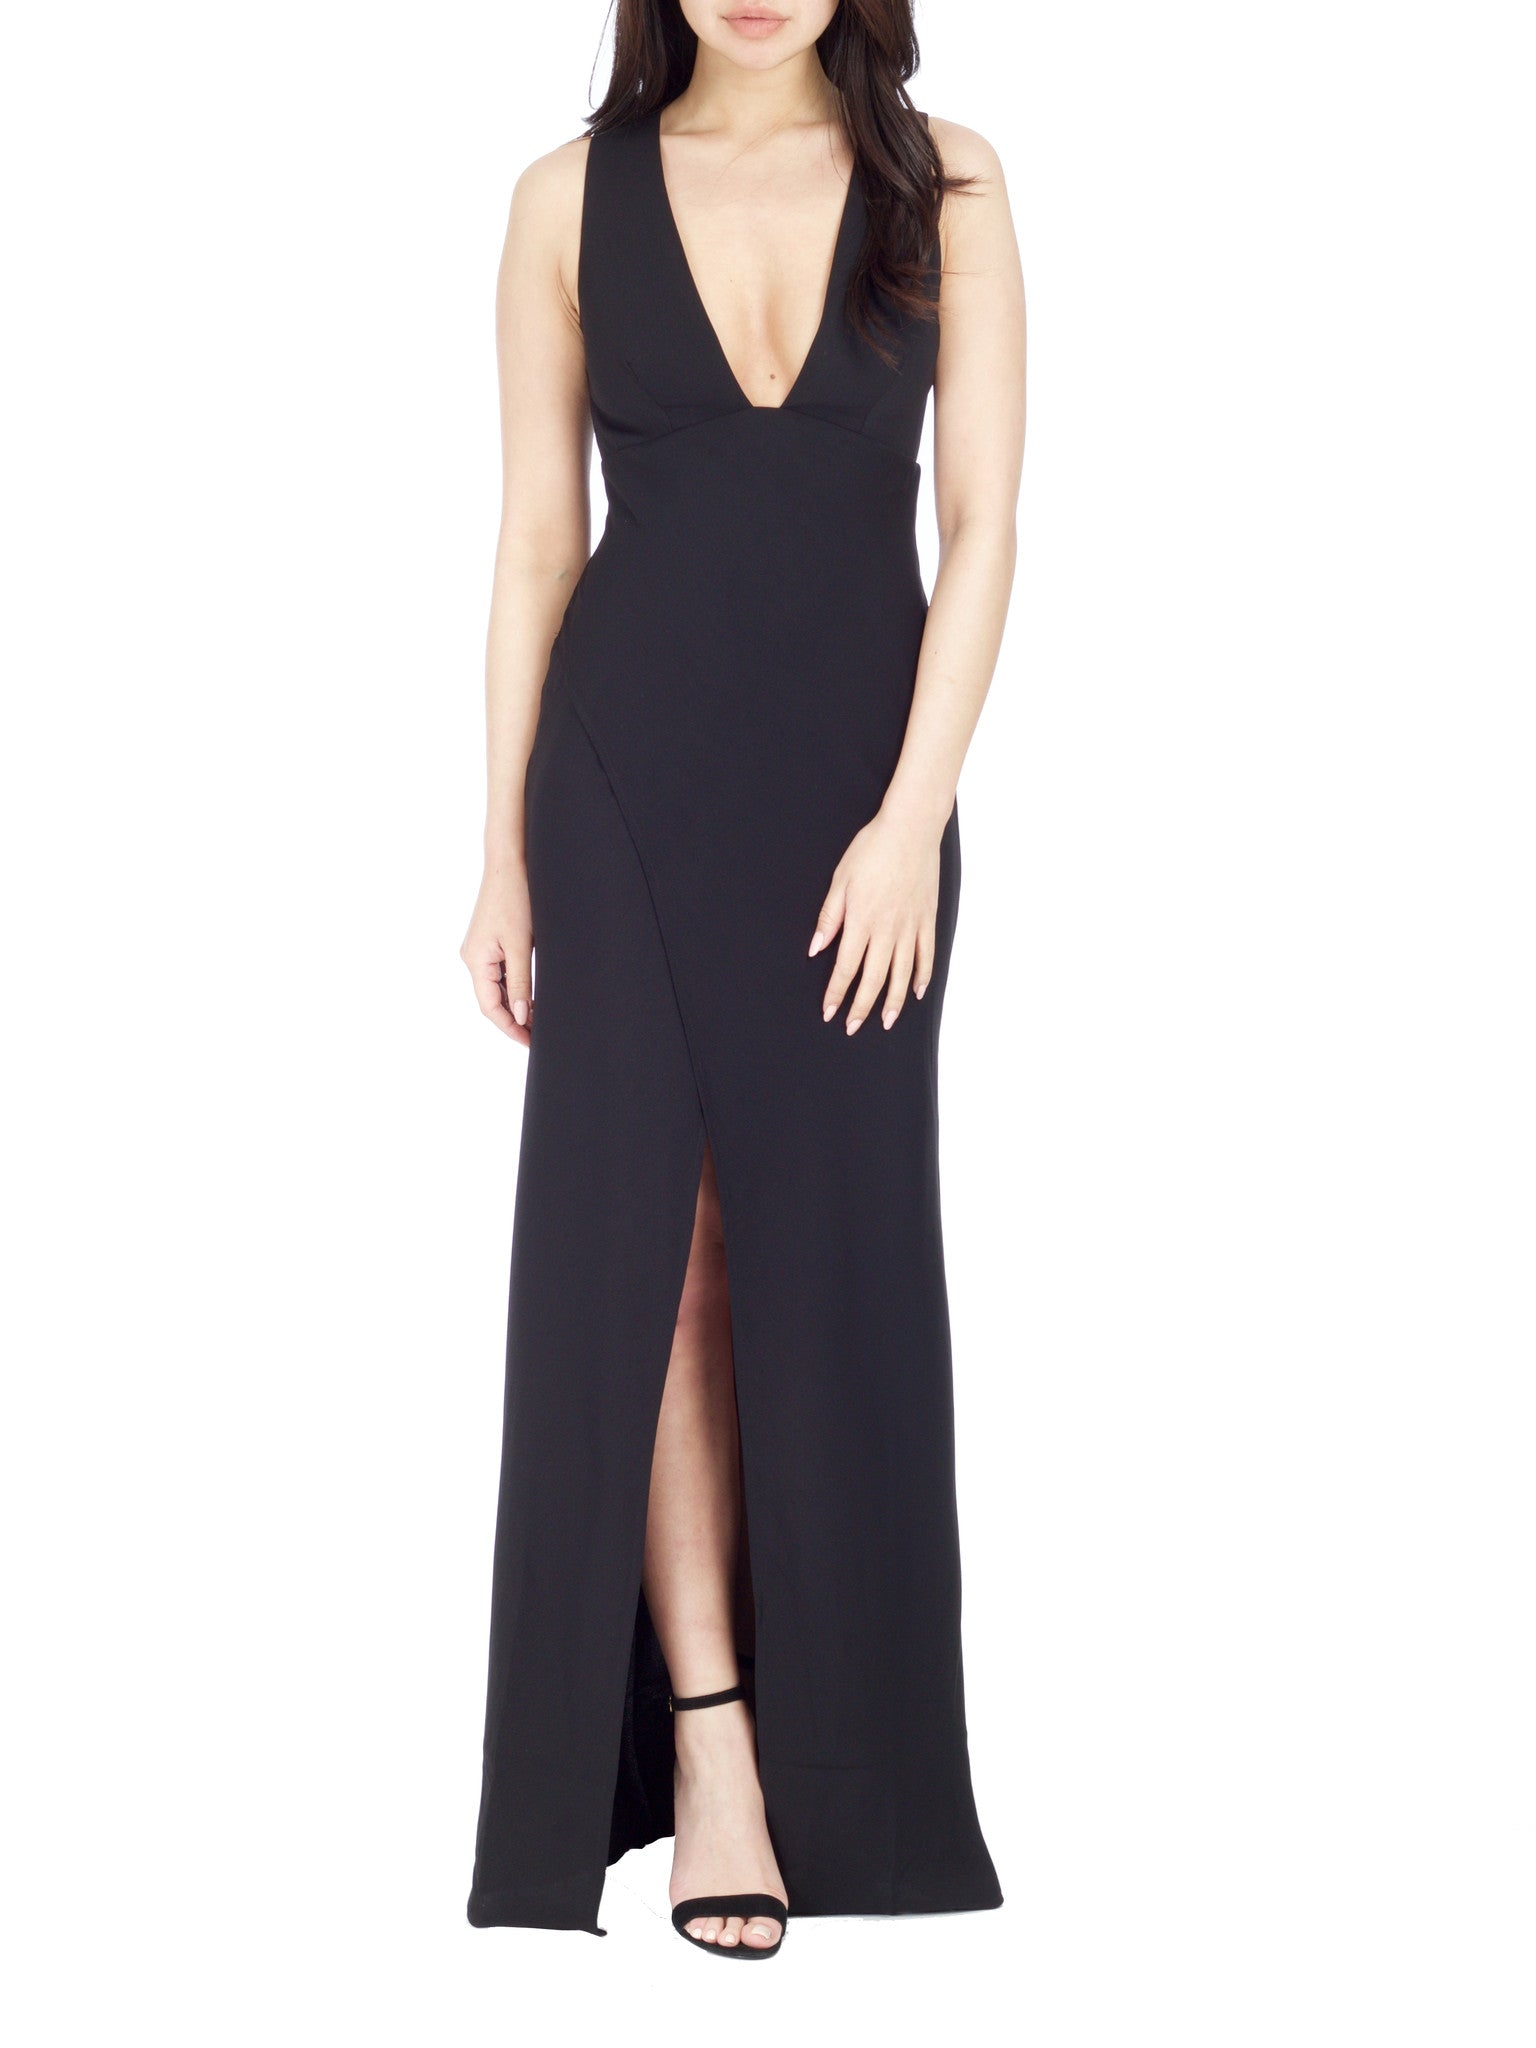 Enough Space Maxi Dress - PRADEGAL